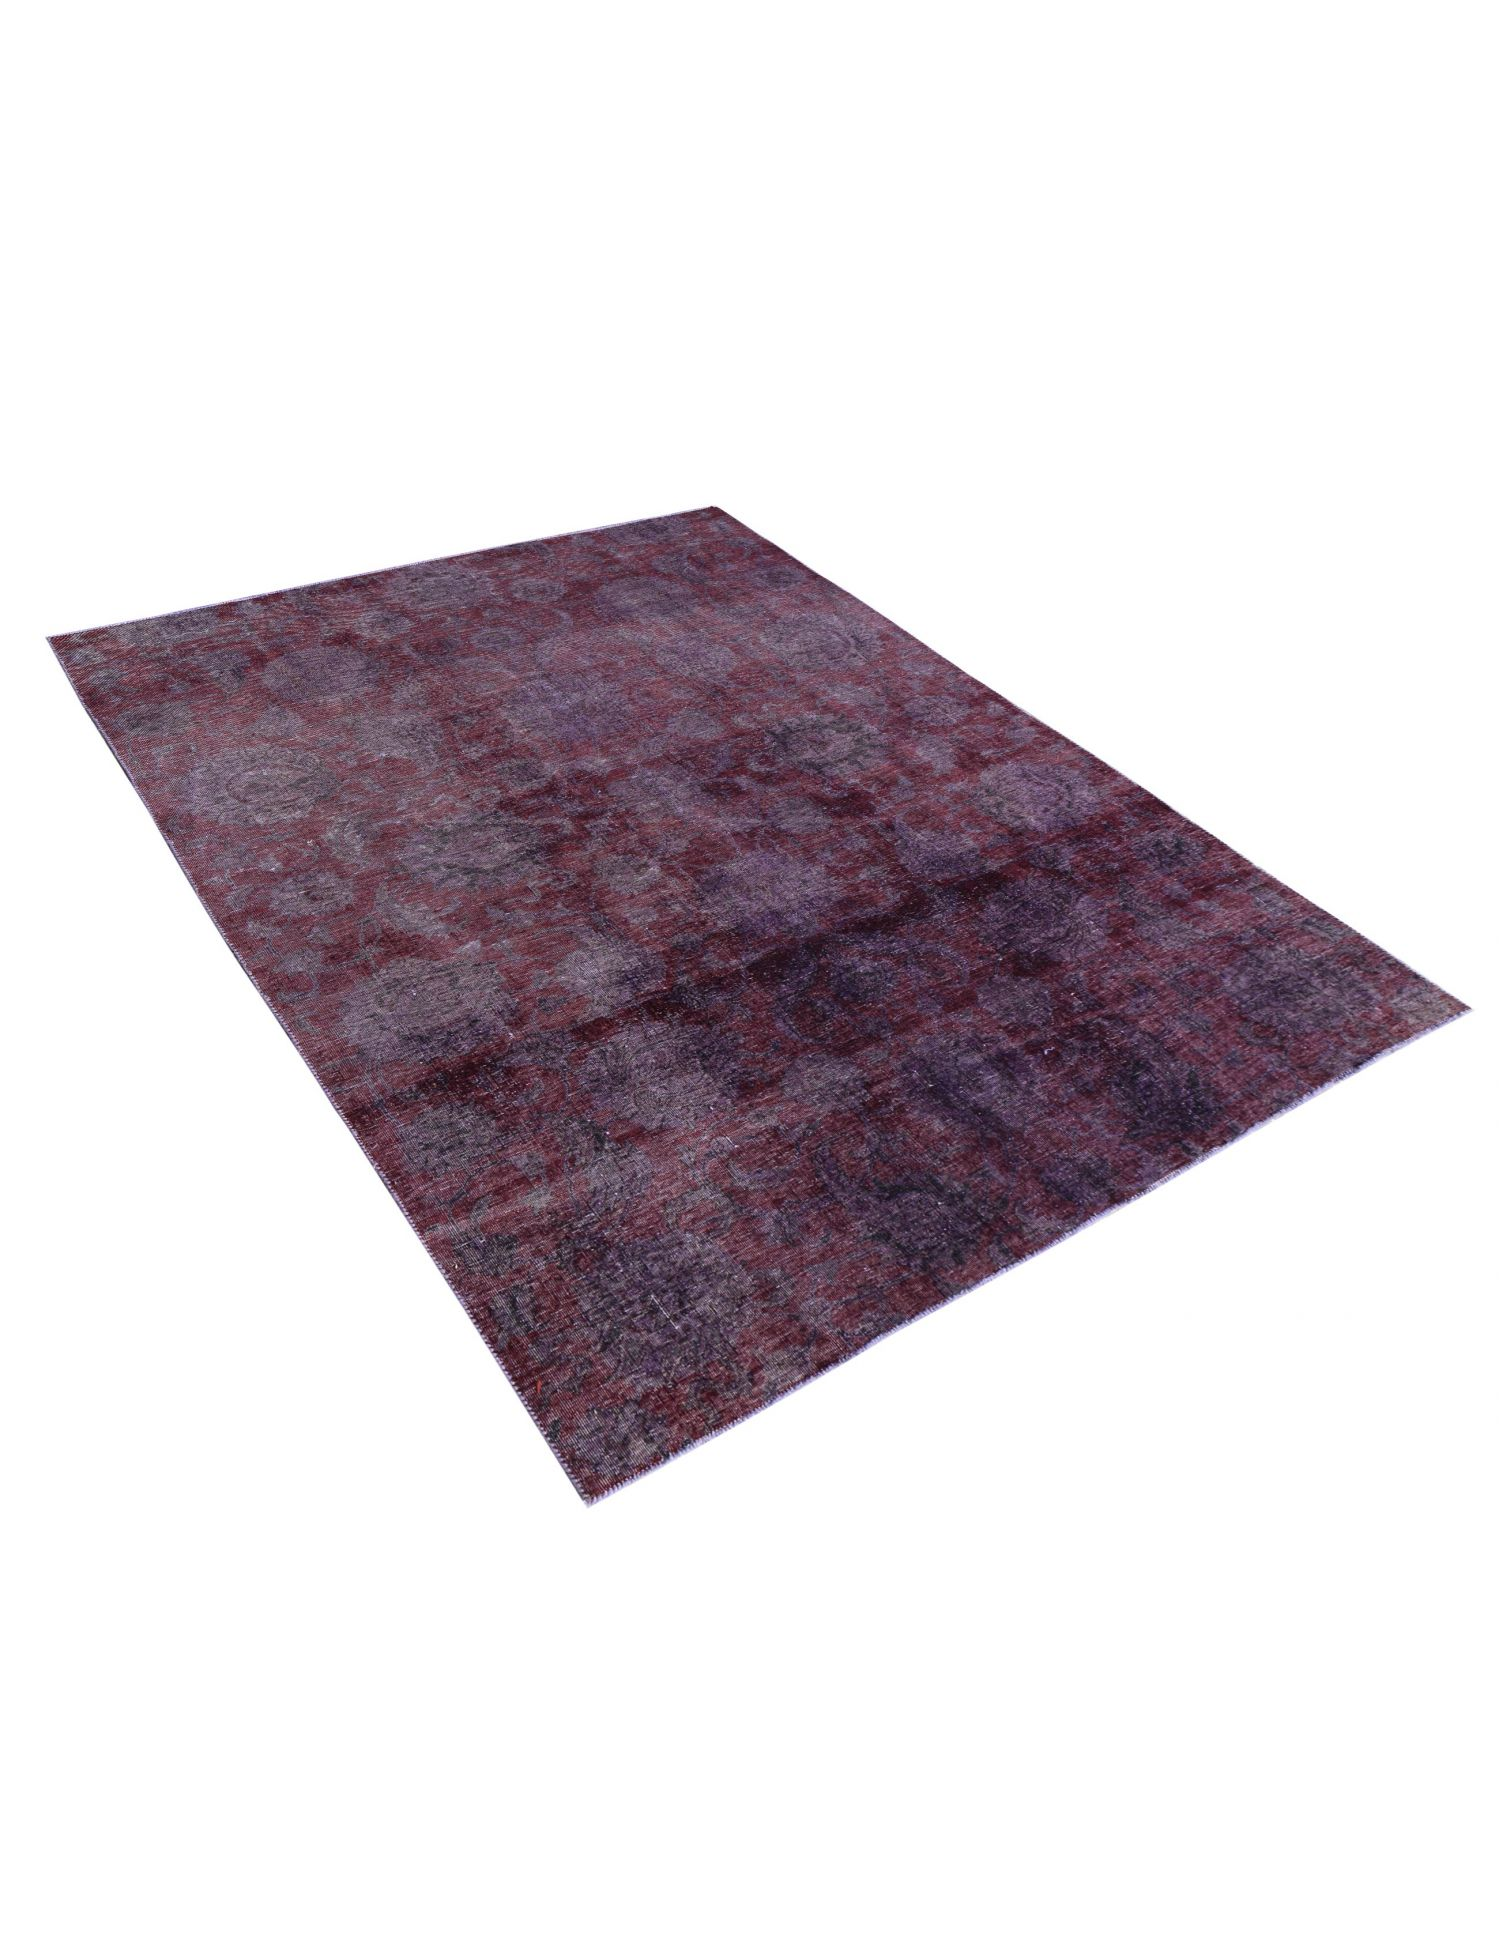 Vintage Carpet  purple <br/>266 x 198 cm